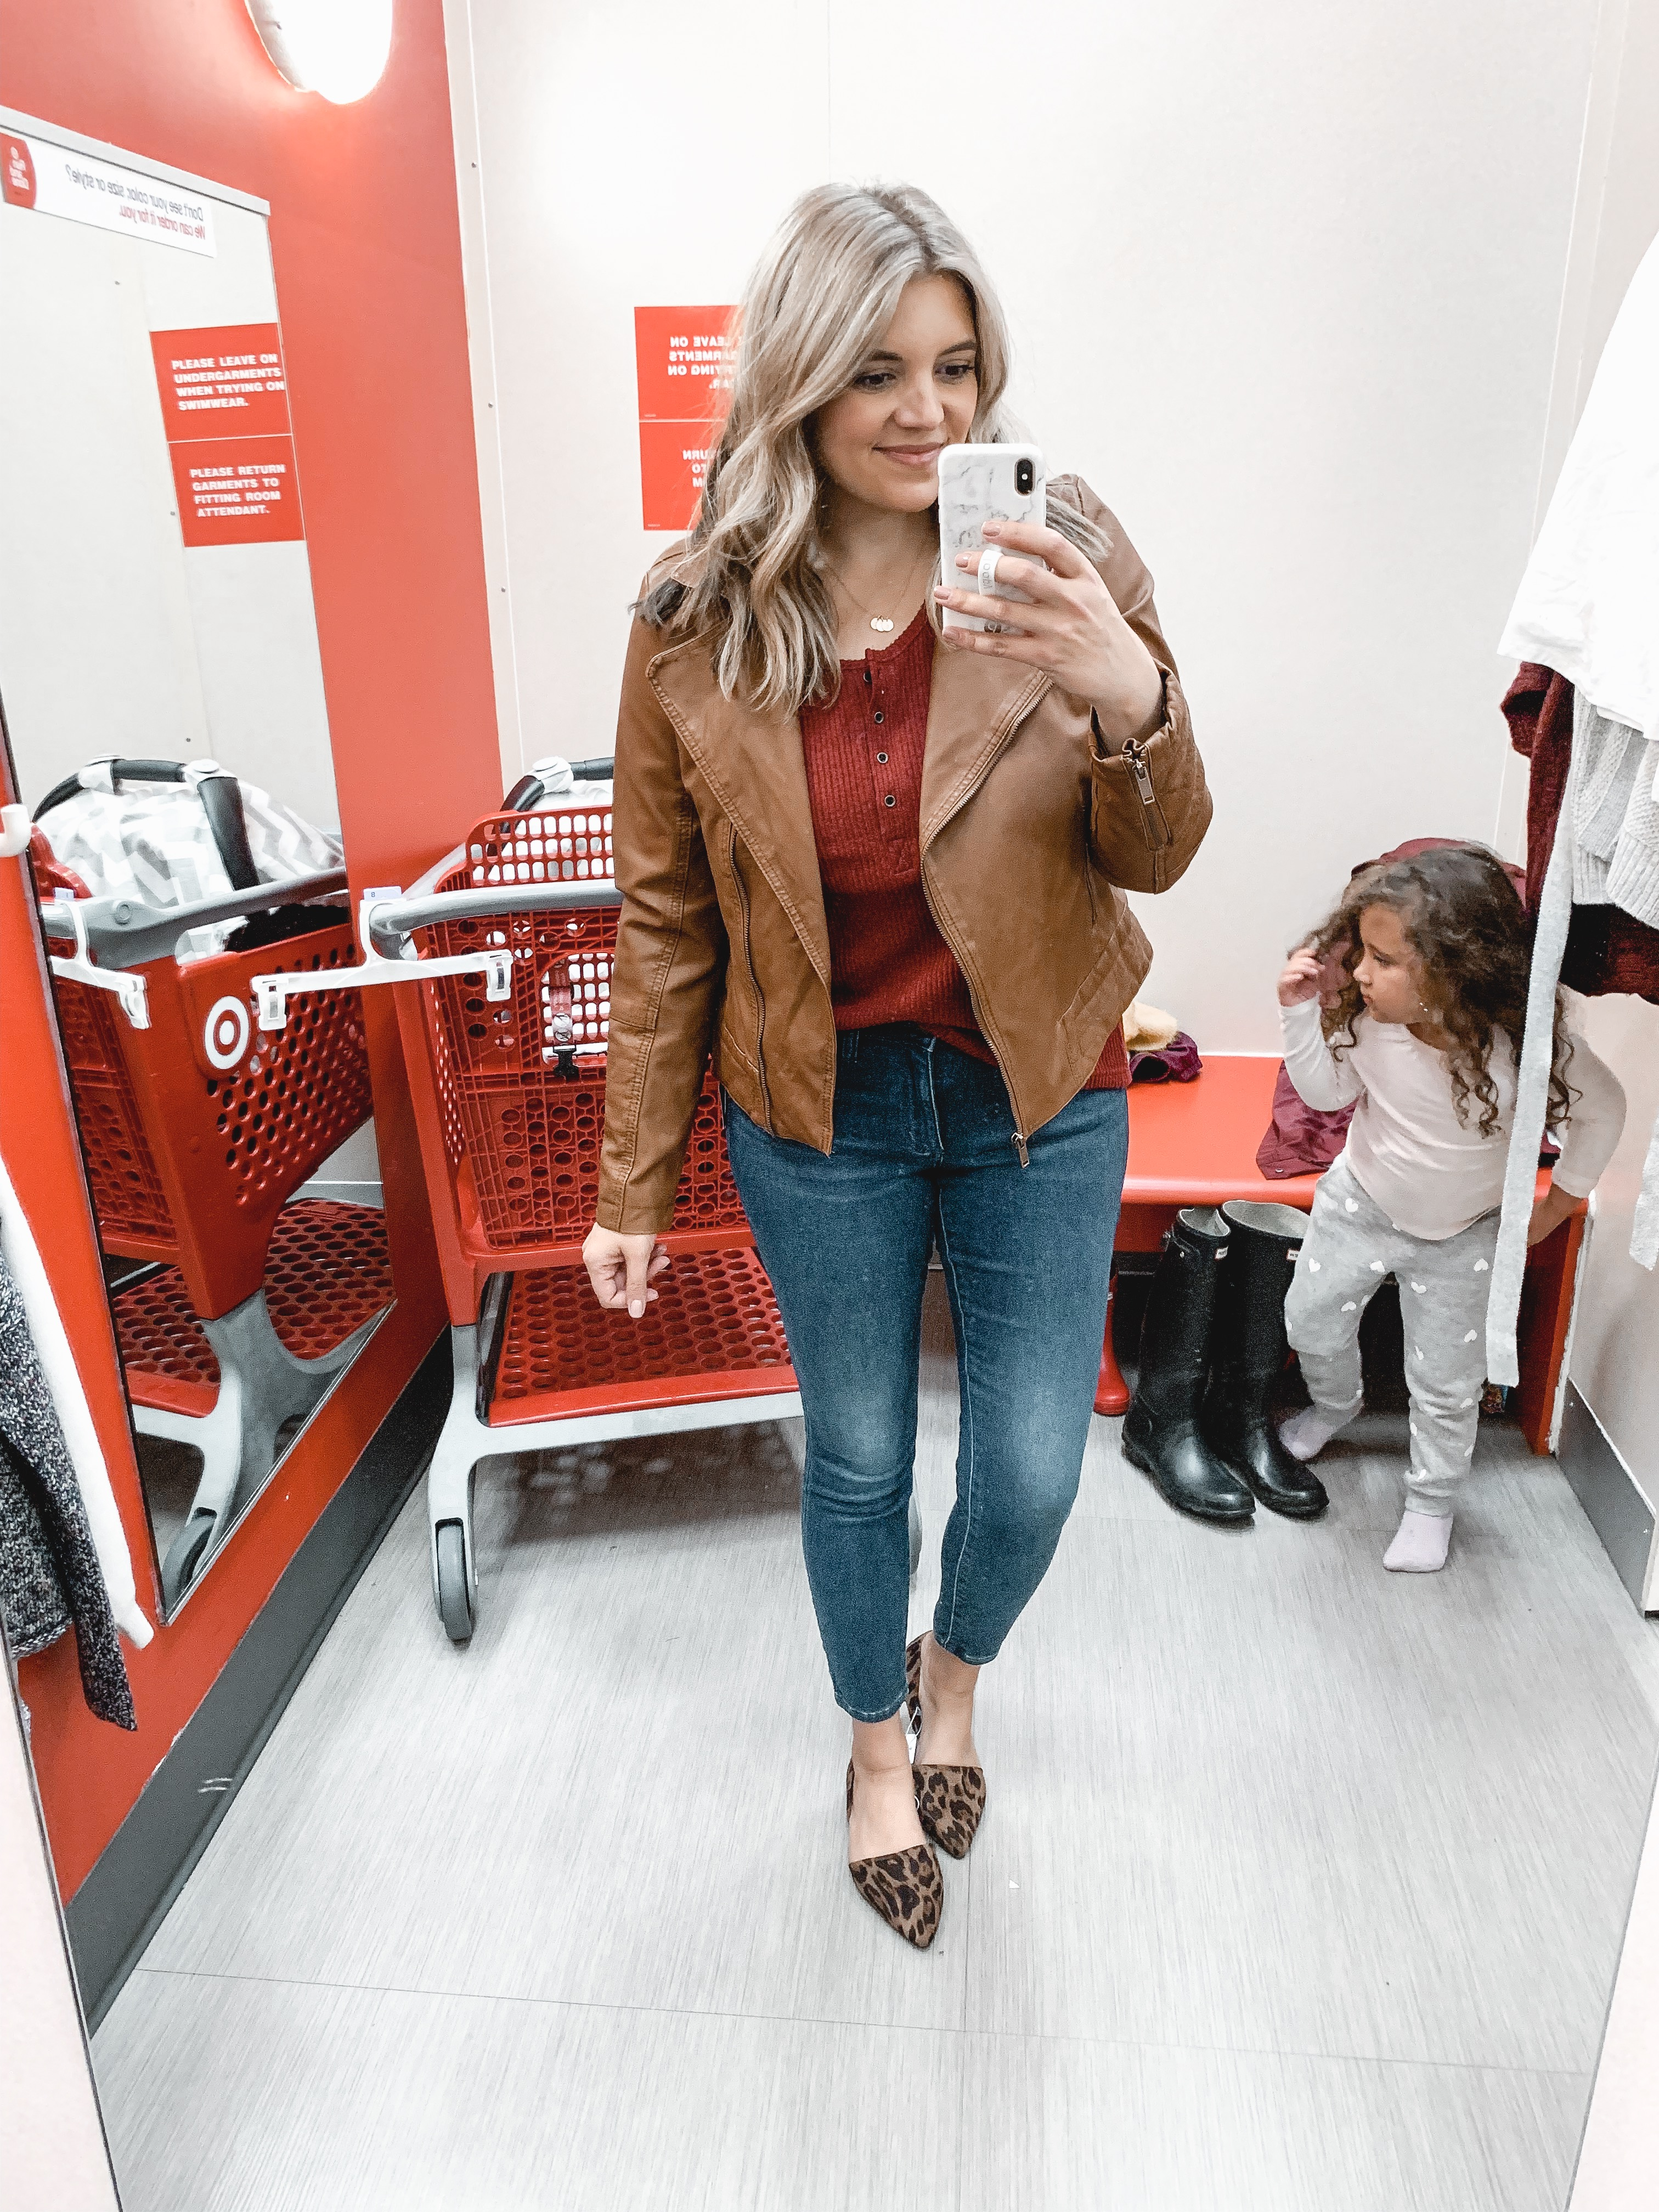 target faux leather moto jacket - november try try on session: over 15 items reviewed for fit and style! bylaurenm.com